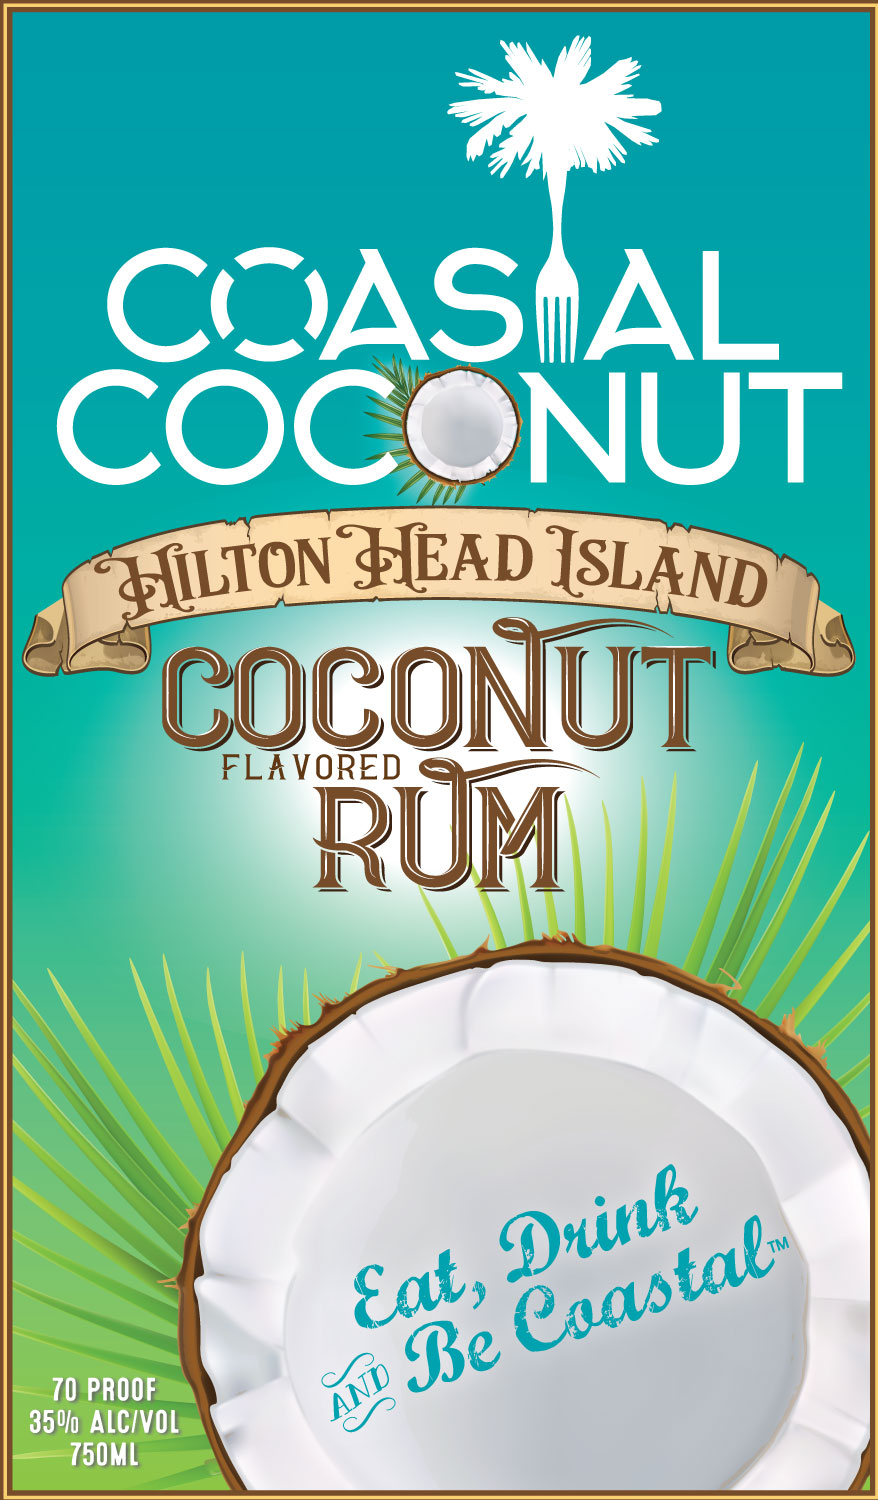 Coastal-Coconut-label.jpg